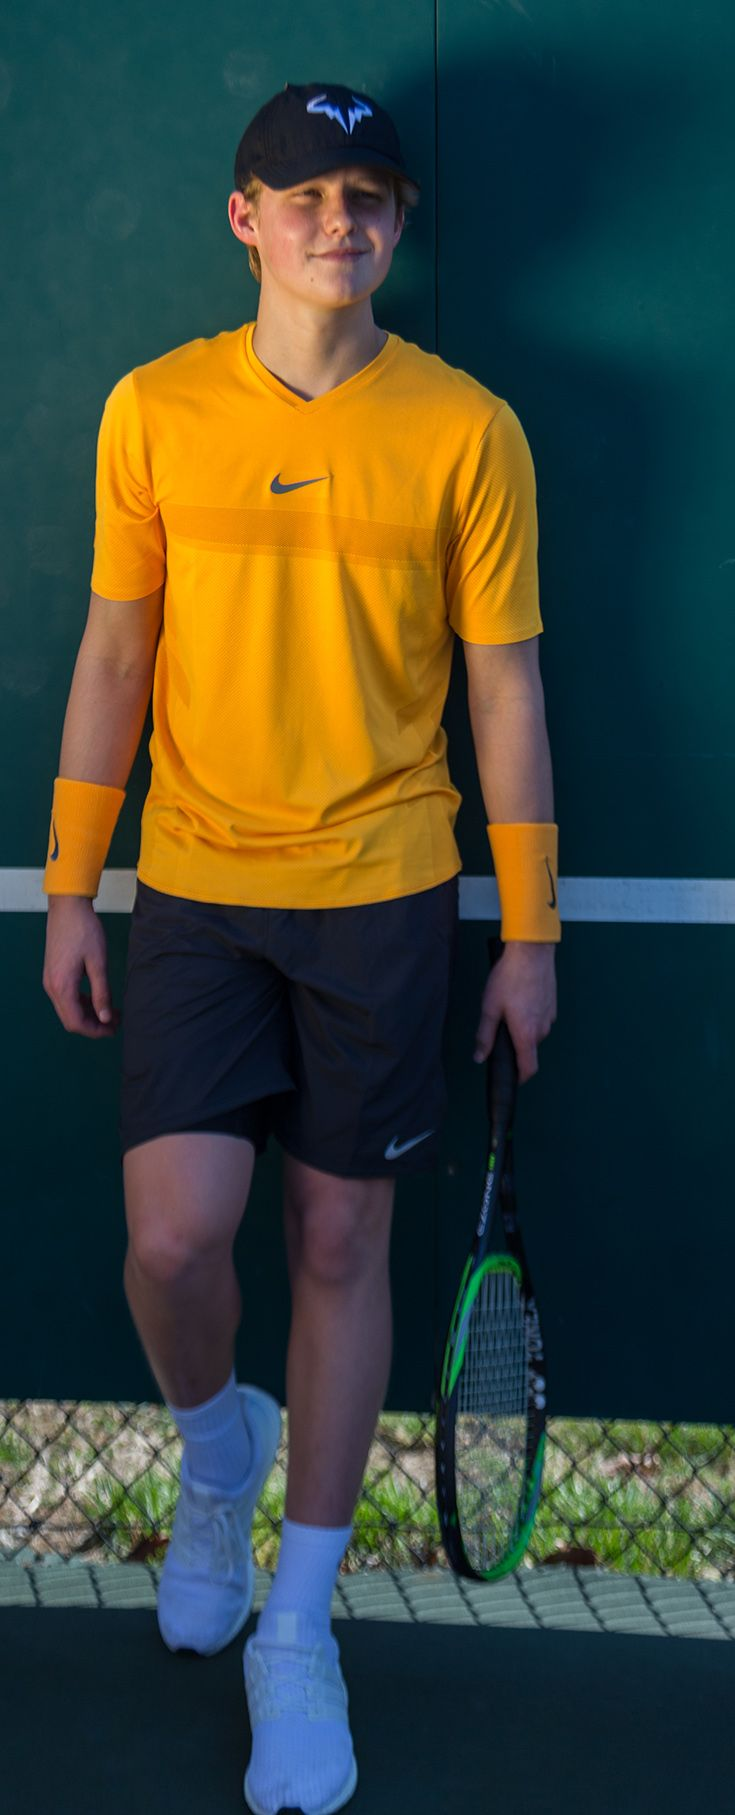 Check Out The Newest Men S Tennis Apparel Athlete Collection For Spring 2018 Featuring Tennis Shirts Shorts T Shirts Tennis Clothes Tennis Shirts Nike Men